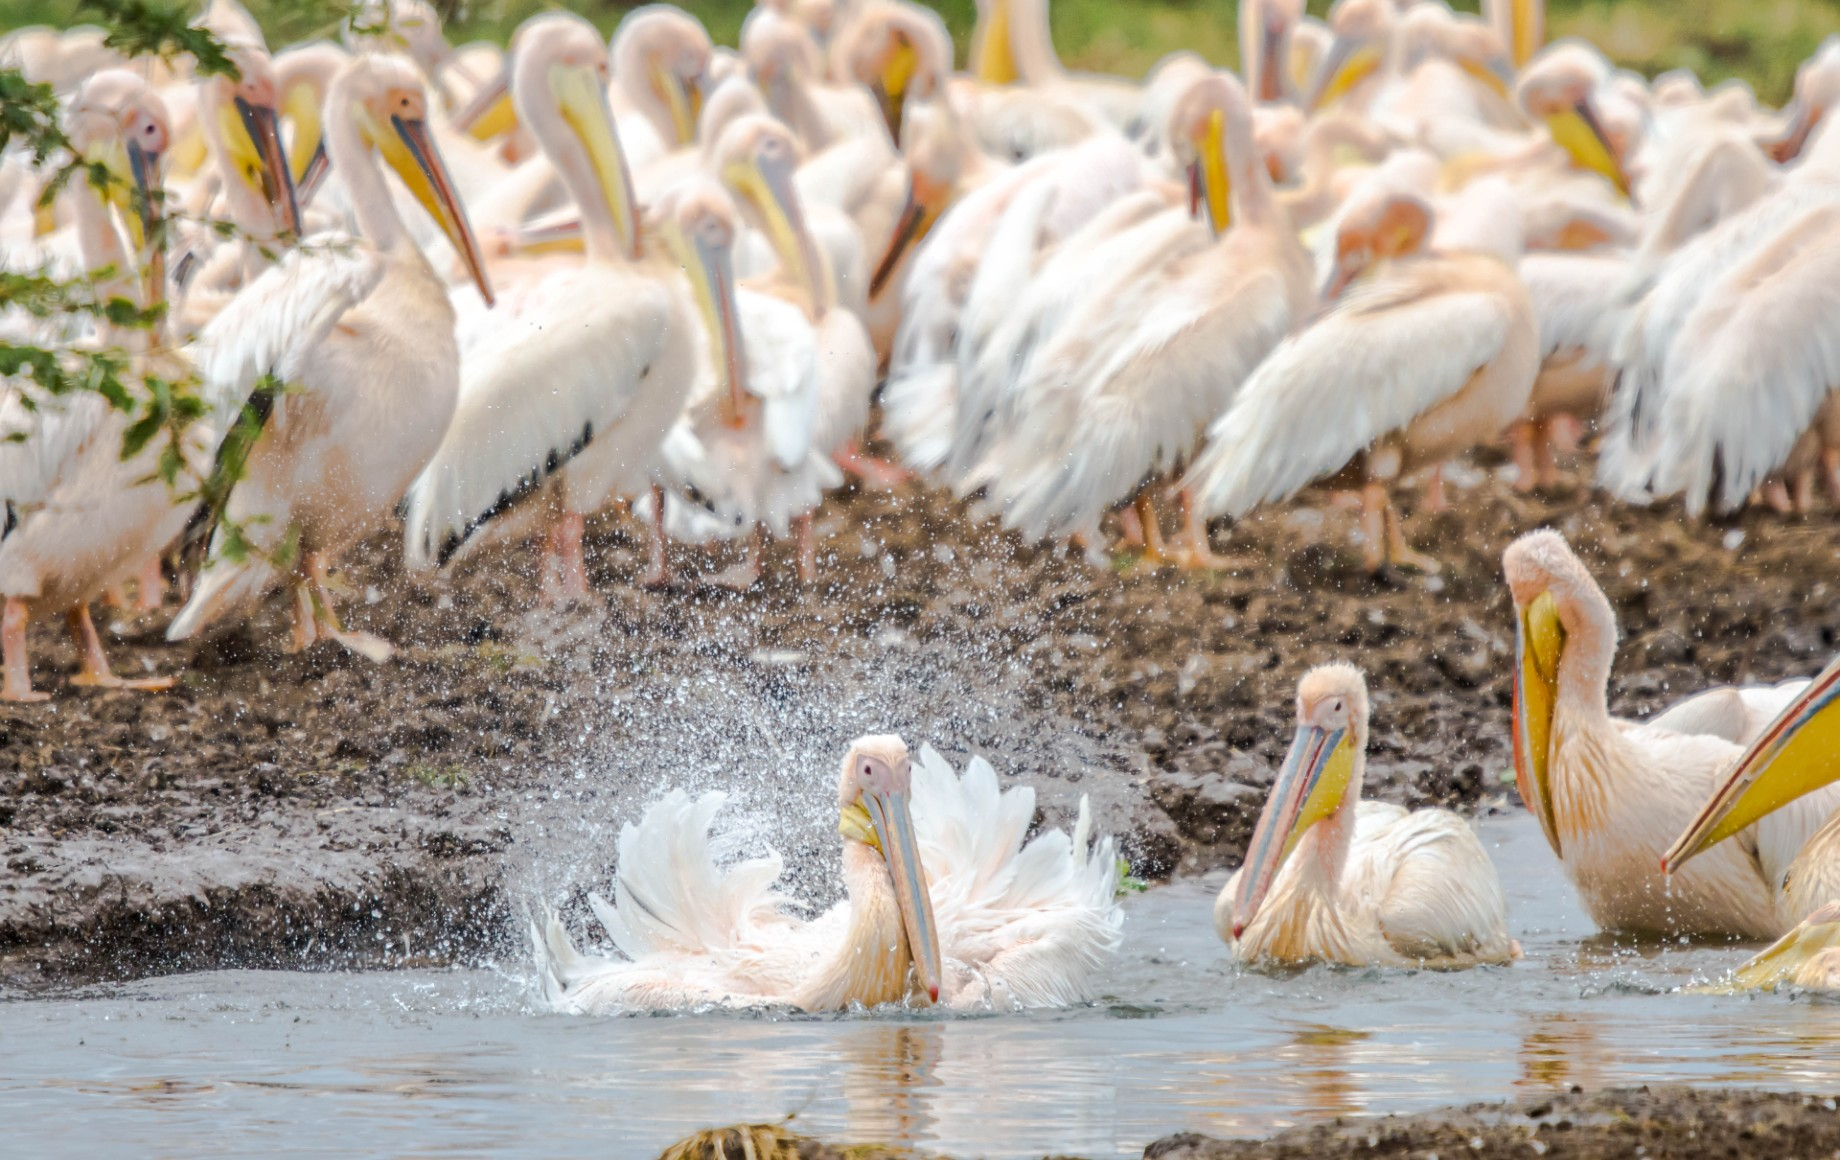 A number of pelicans in the water